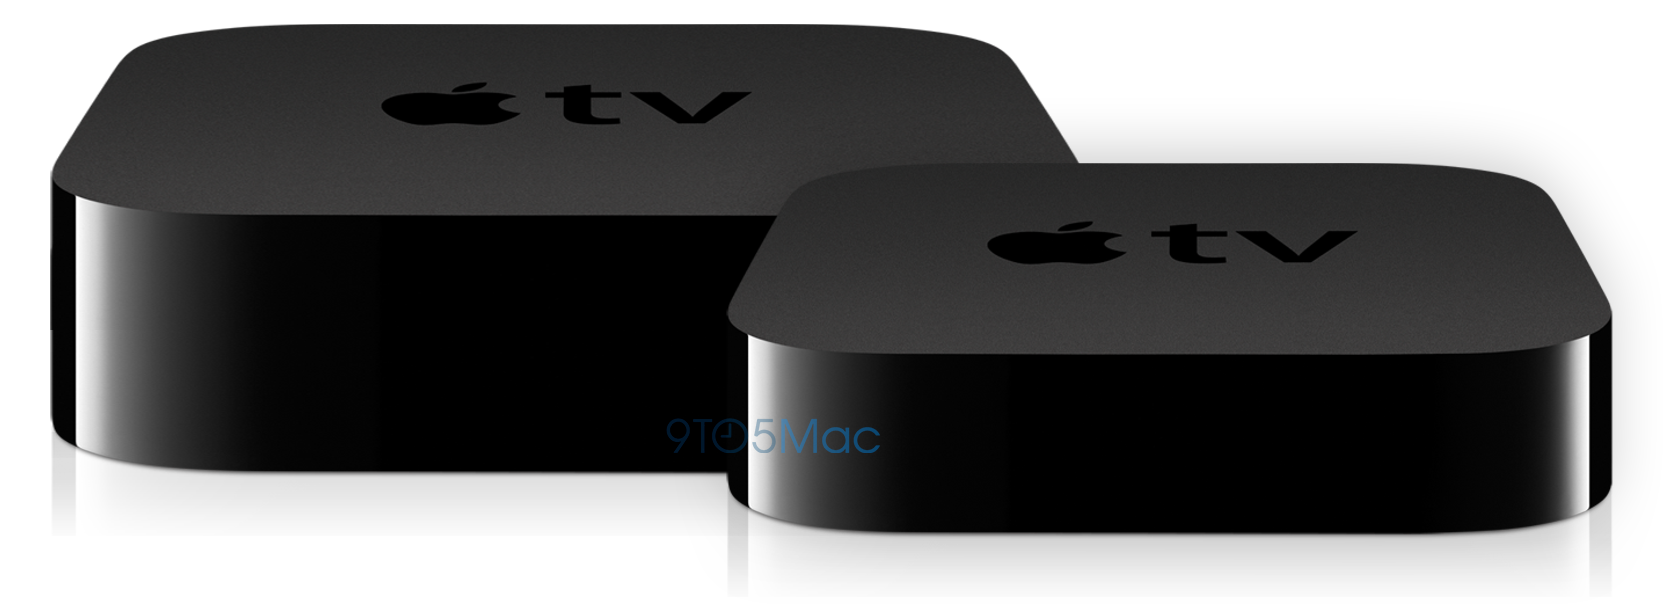 Apple Tv 4 Coming In October For Under 200 Apple Tv 3 Stays Gets New Streaming Service Apple Tv Apple Streaming